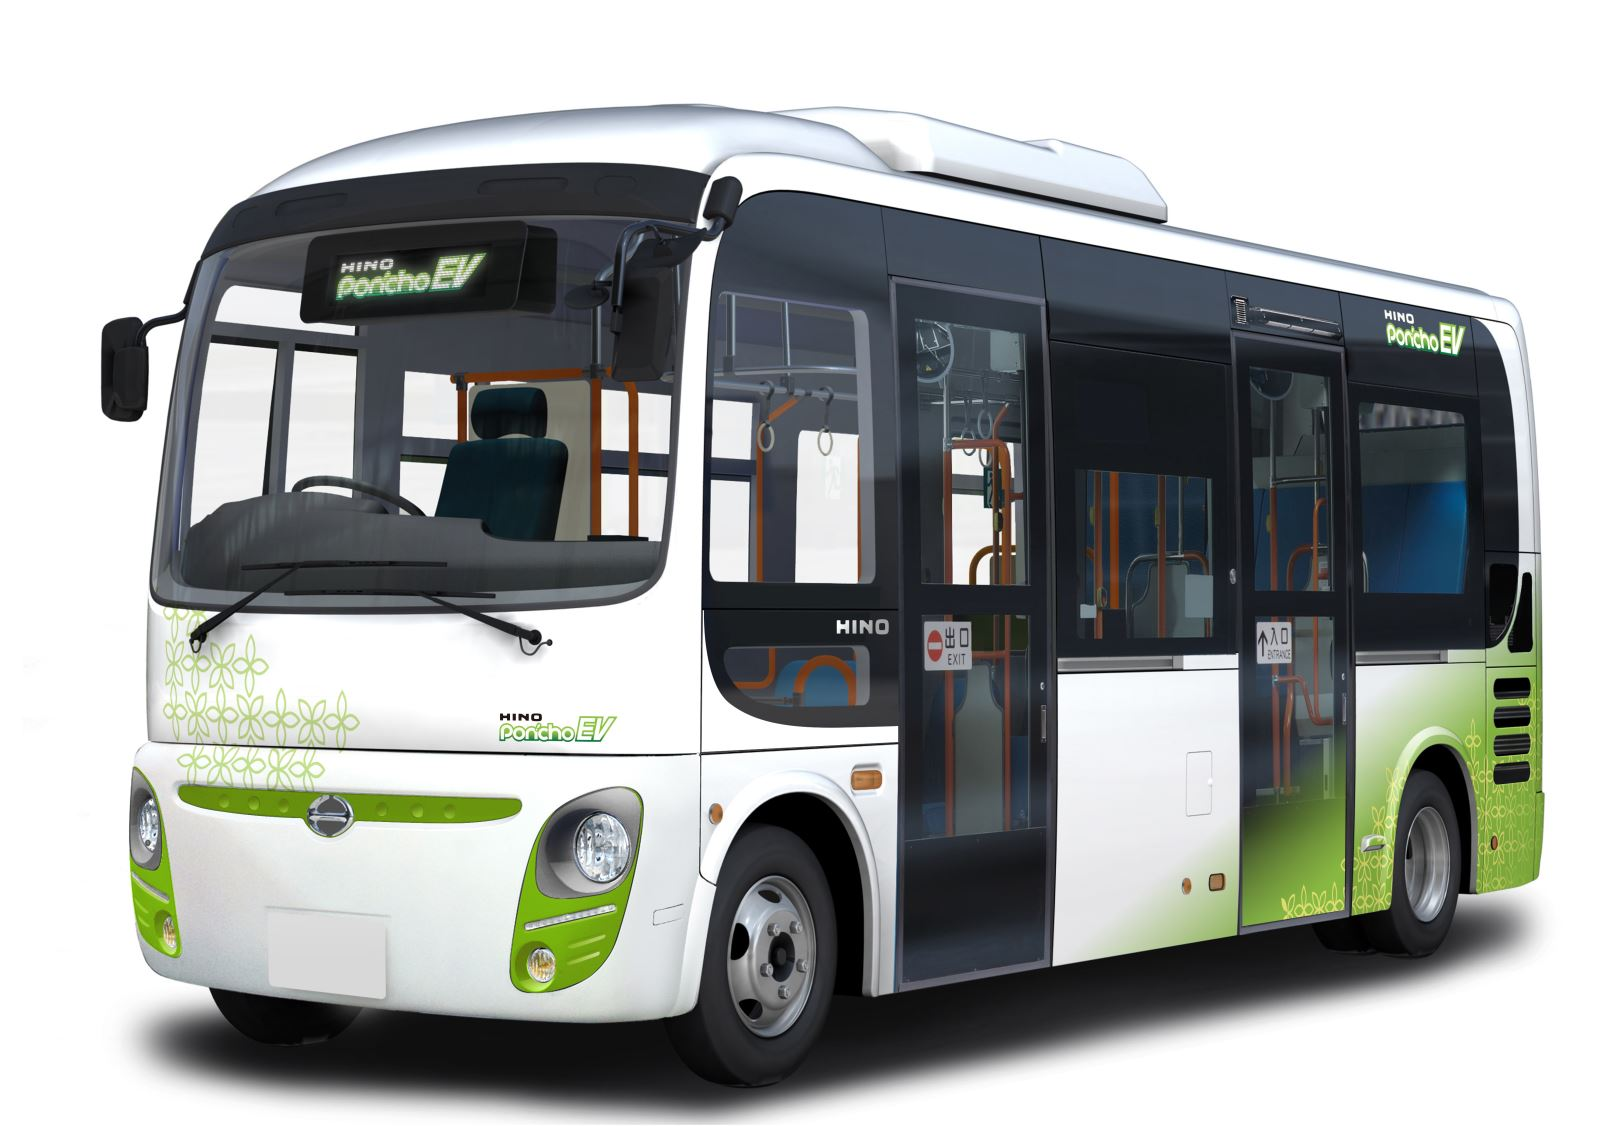 At the stand will also be the electric Hino Poncho bus, which is available for limited sale in Japan. It is the only light-duty non-step community bus in ...